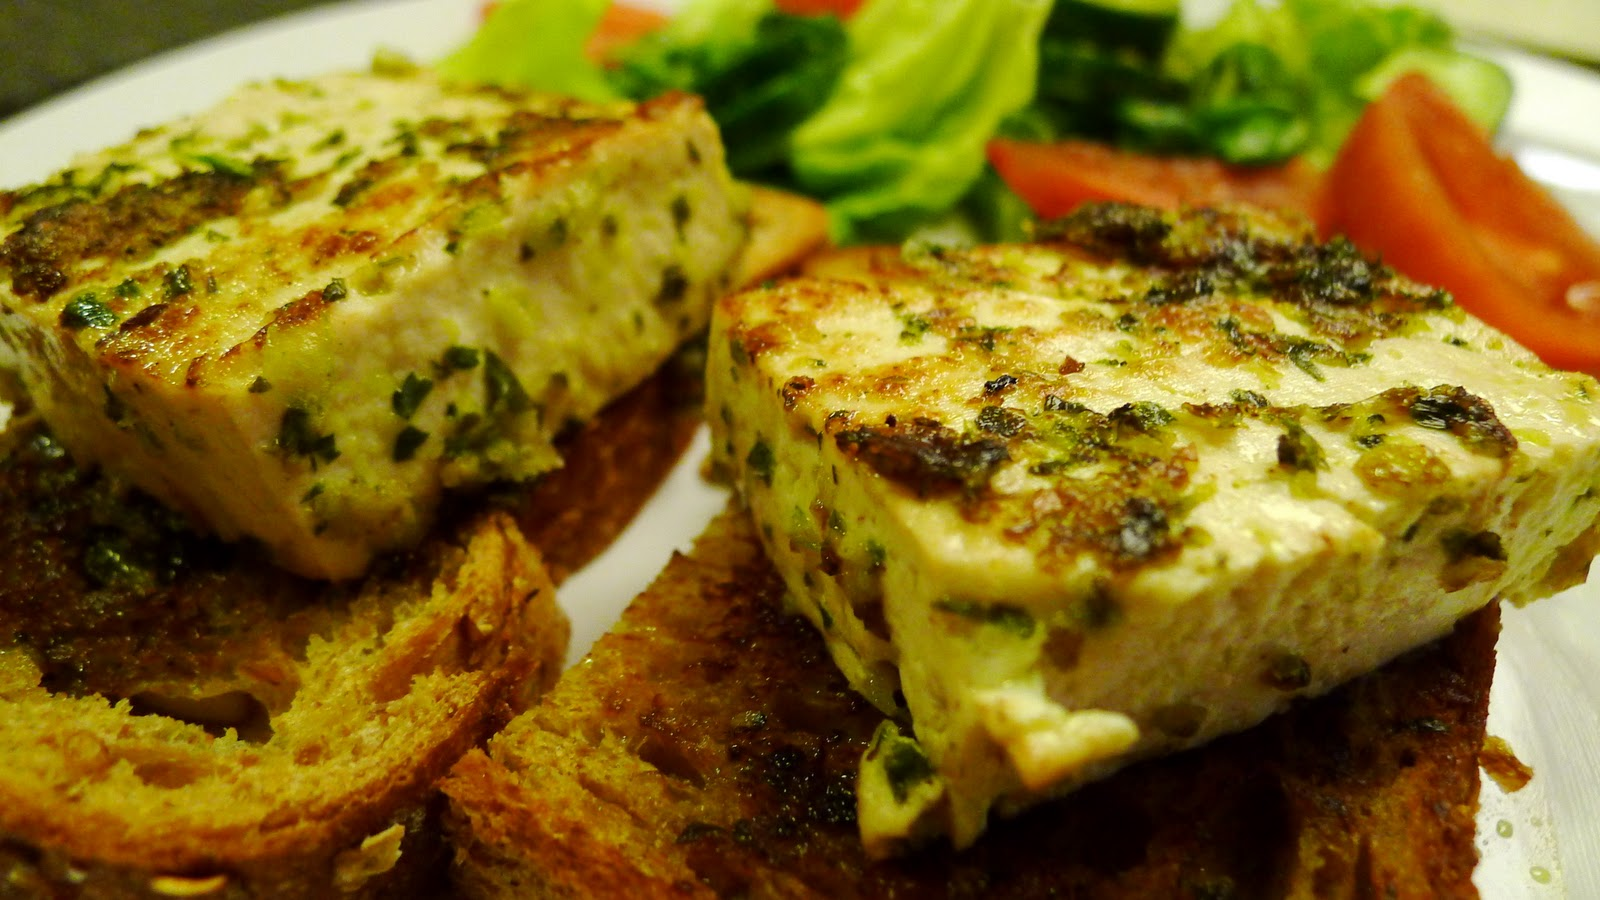 Grilled Tofu with Chimichurri on Grilled Bread | Ask For Papaya